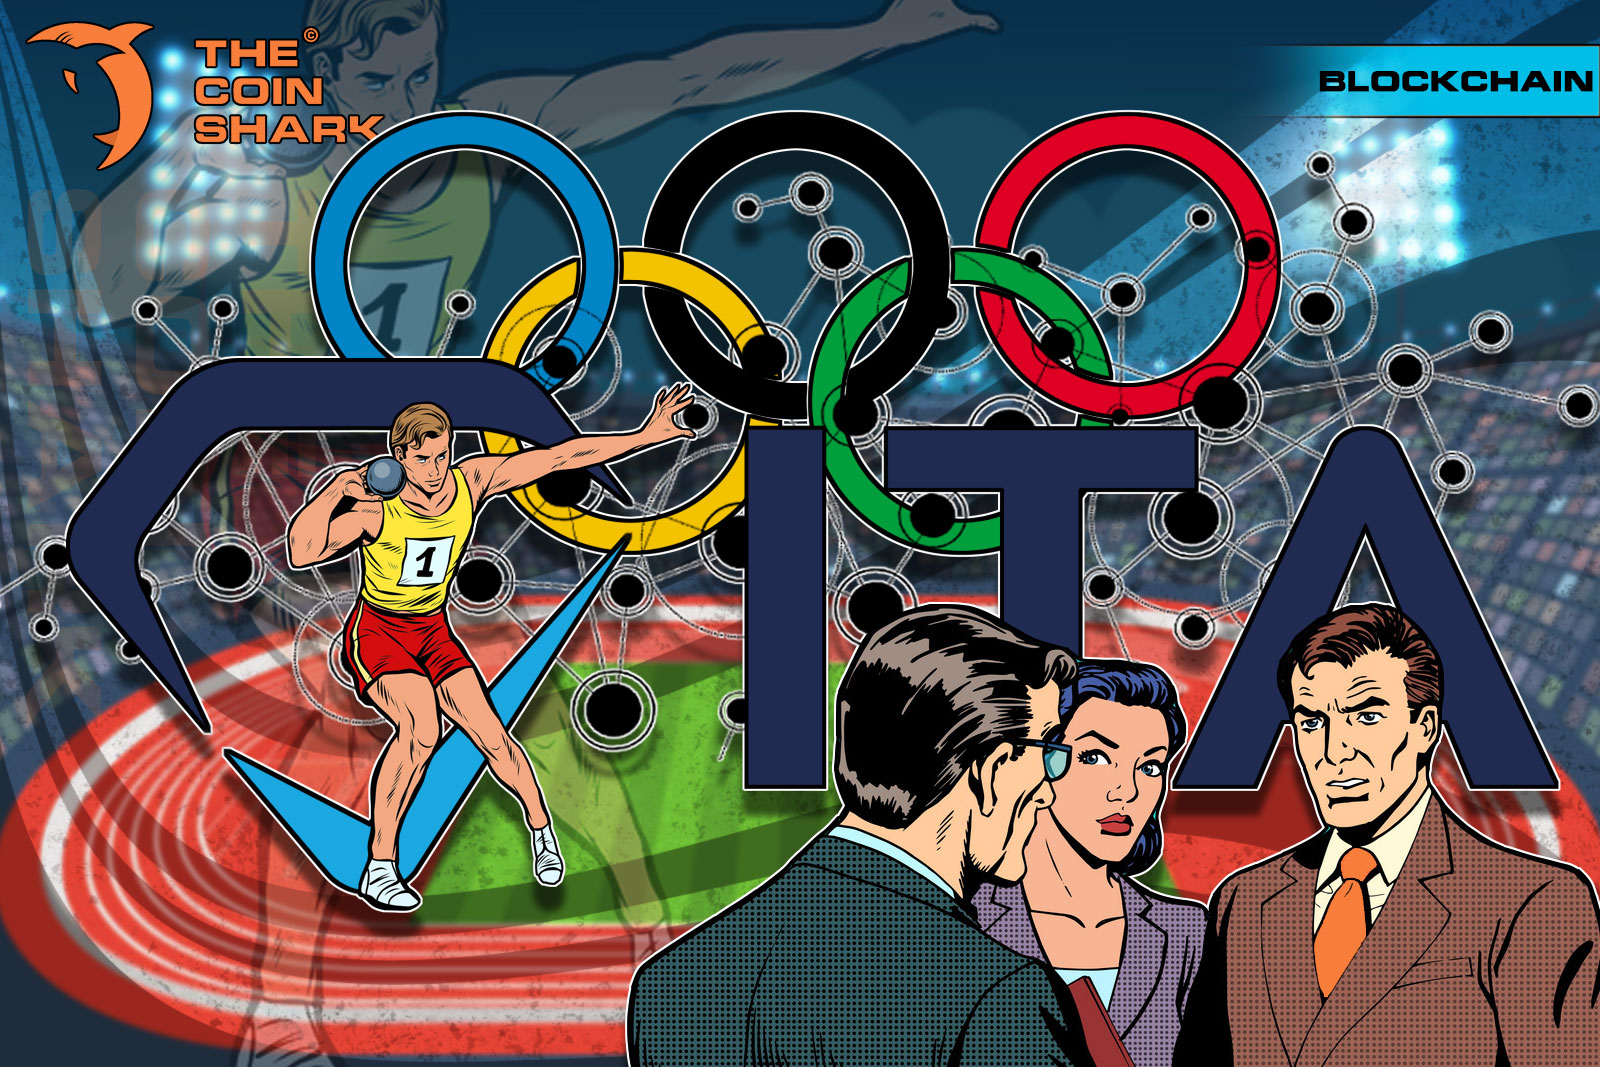 At the 2020 Summer Olympics in Tokyo Blockchain Technology will be Used